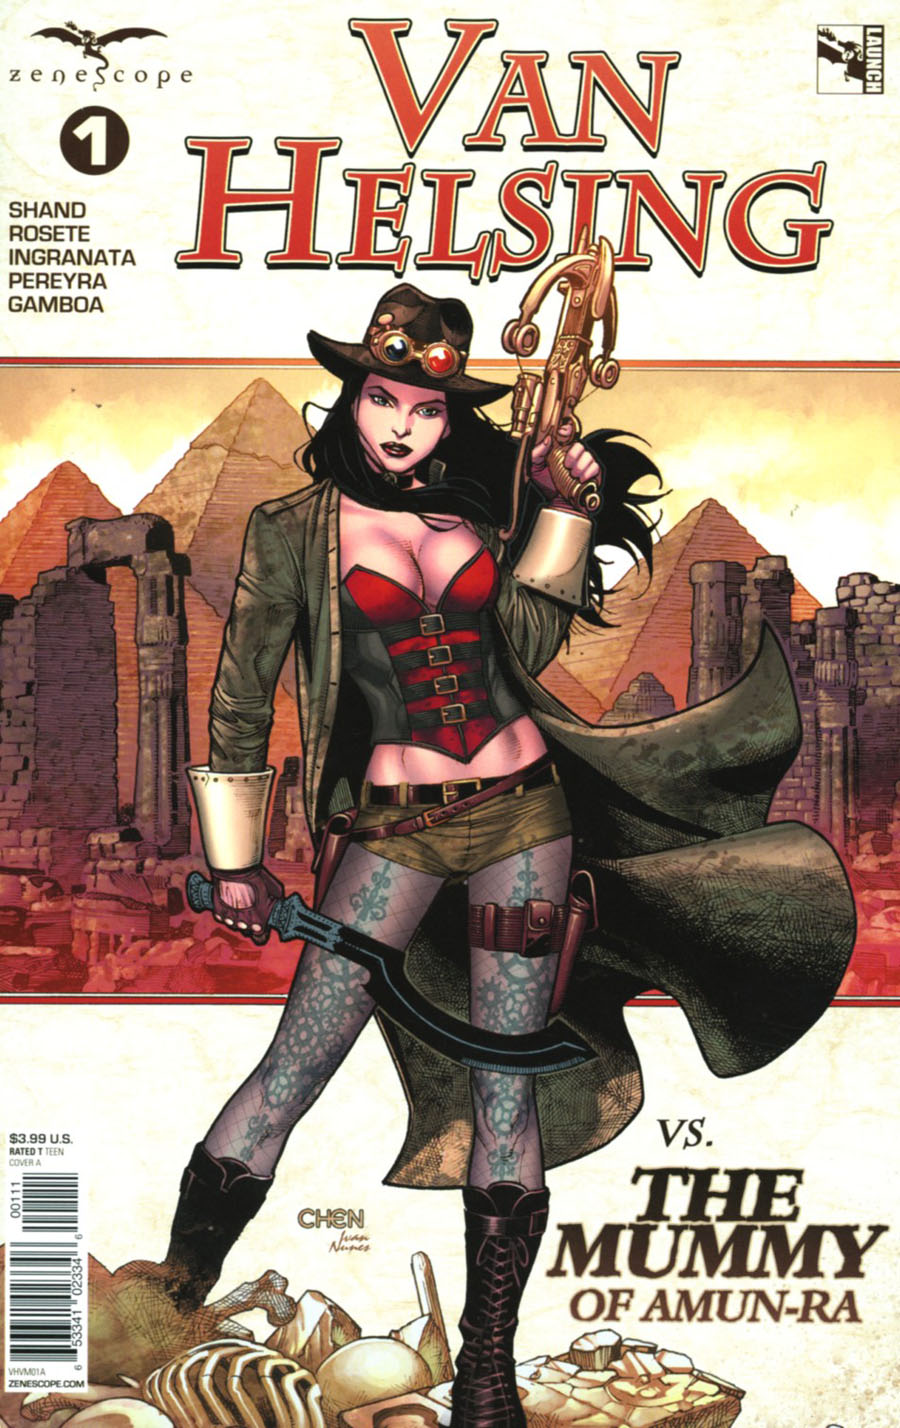 Grimm Fairy Tales Presents Van Helsing vs The Mummy Of Amun-Ra #1 Cover A Sean Chen